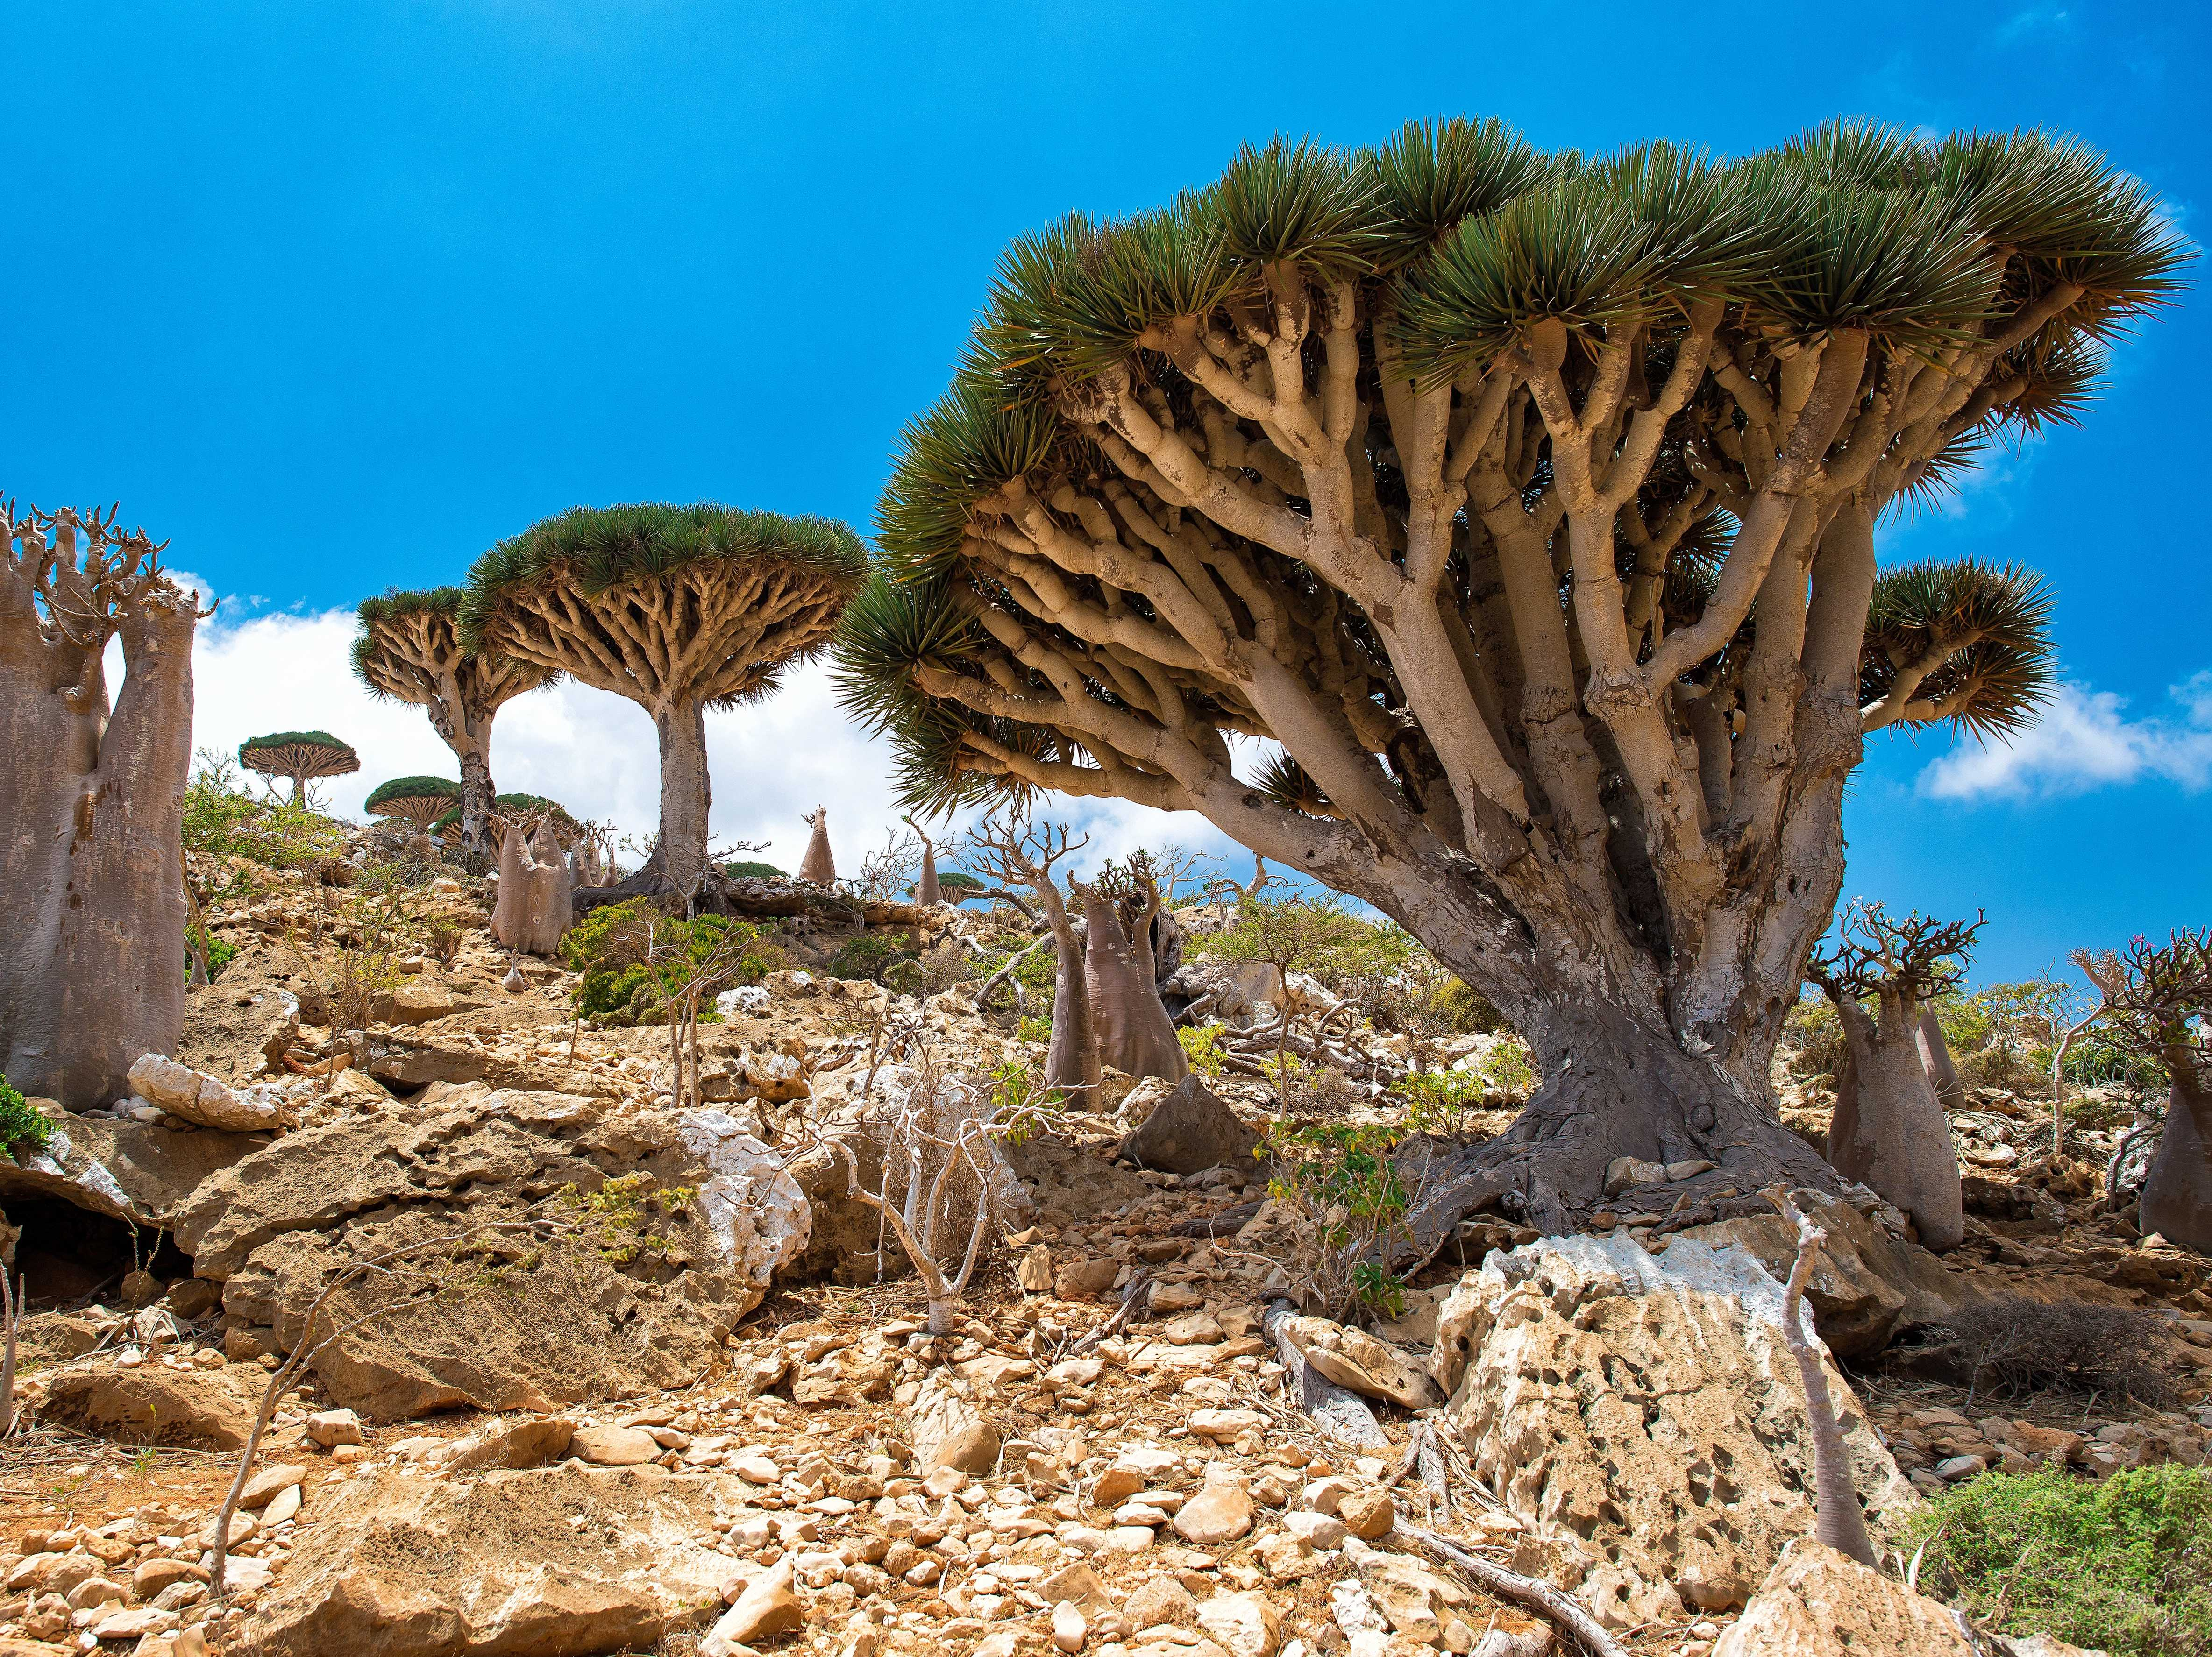 Located in the Indian Ocean near the Gulf of Aden, the Socotra Archipelago is known for its extremely unique wildlife: 37% of its plant species, 90% of its reptile species, and 95% of its land-snail species are nonexistent anywhere else in the world, according to UNESCO. It's also home to one of the most unique trees in the world, the dragon's blood tree that gets its name from its red sap.